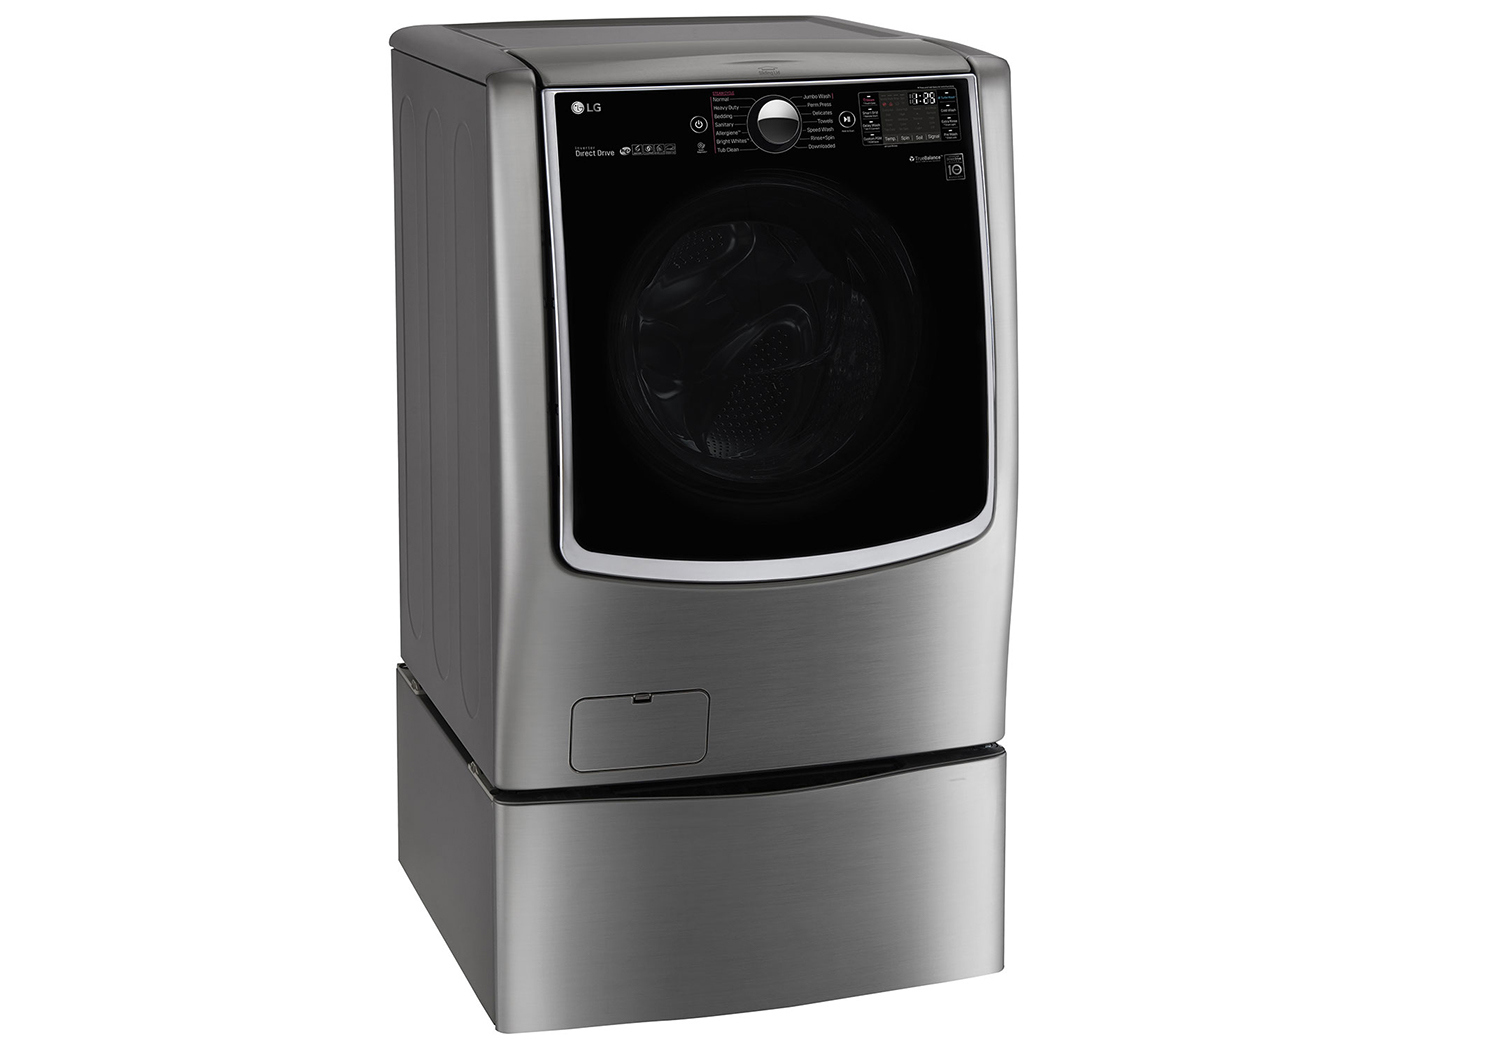 LG SmartthinQ washer